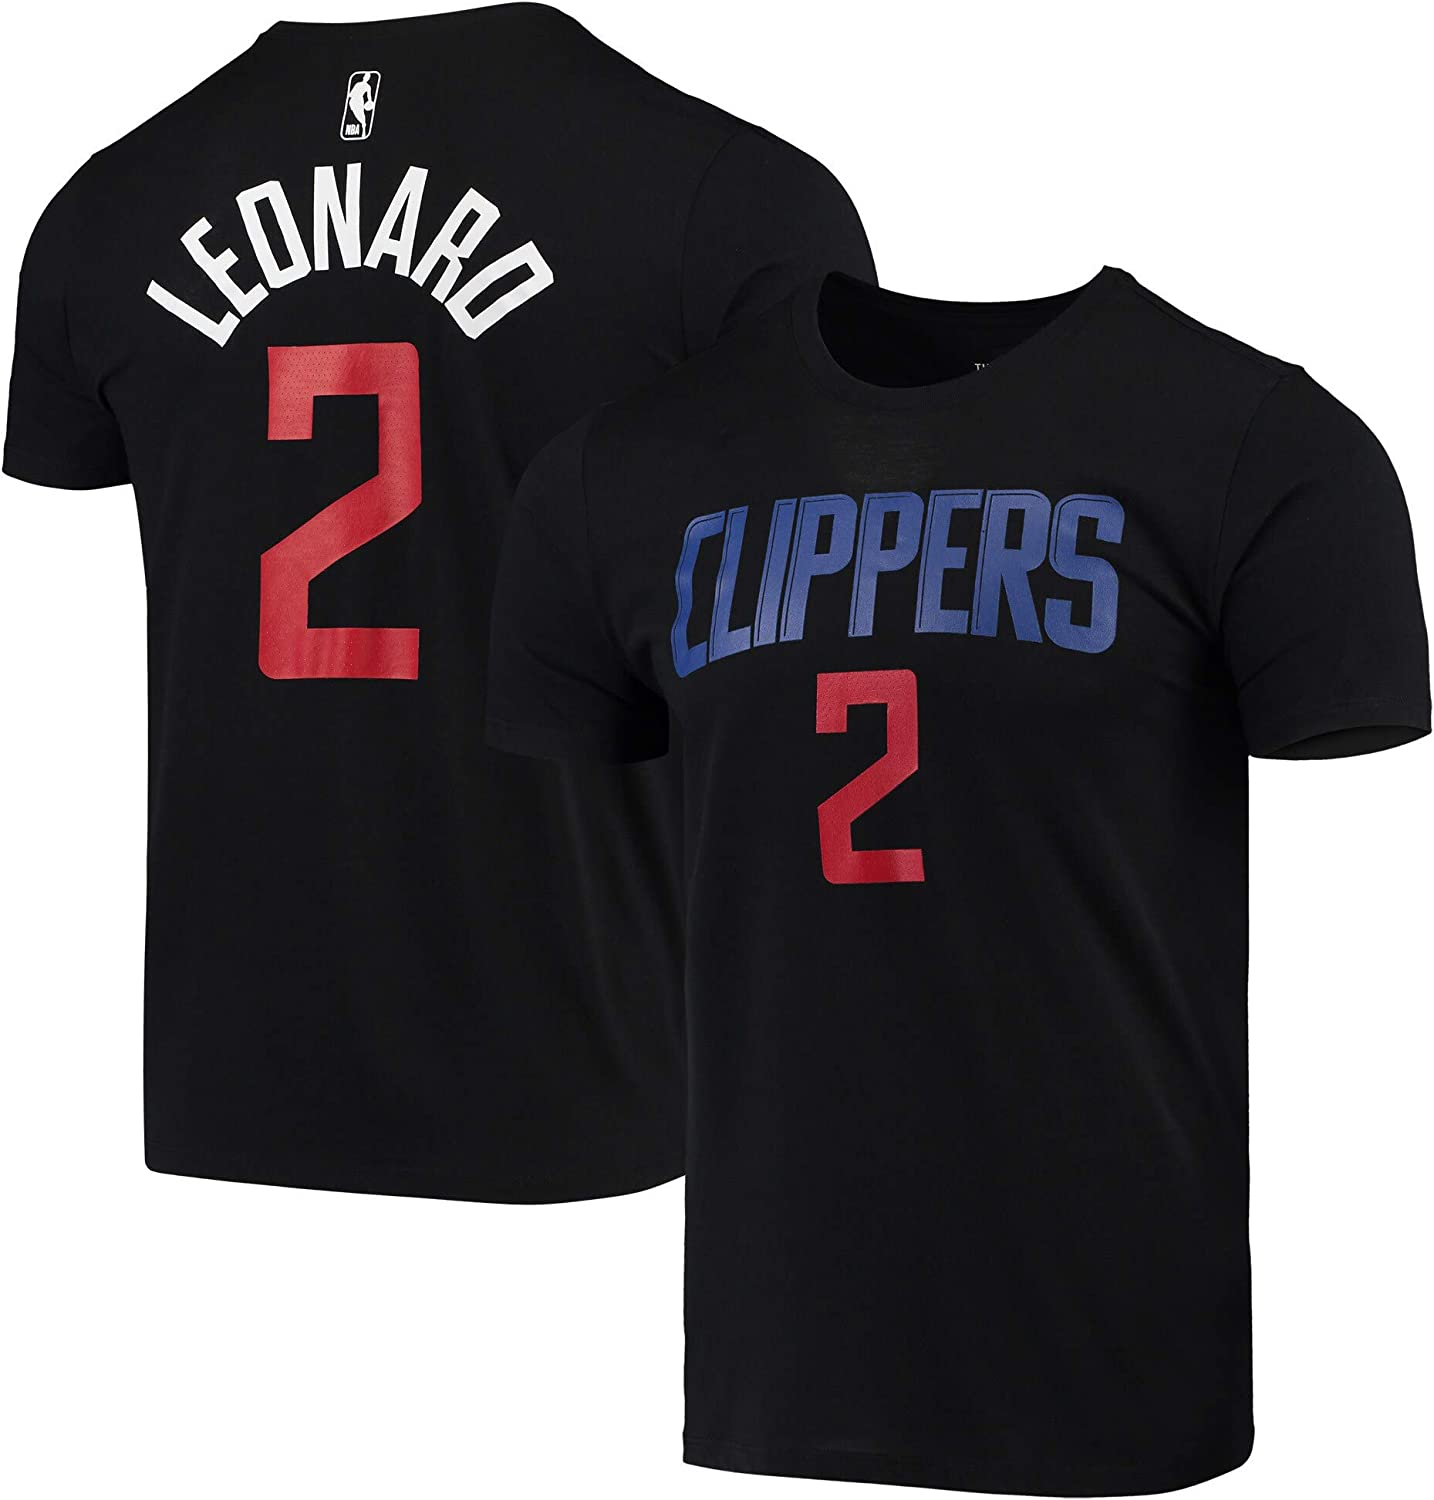 OuterStuff NBA Youth 8-20 Black Dri Fit Cotton Dark Icon Player Name /& Number T-Shirt